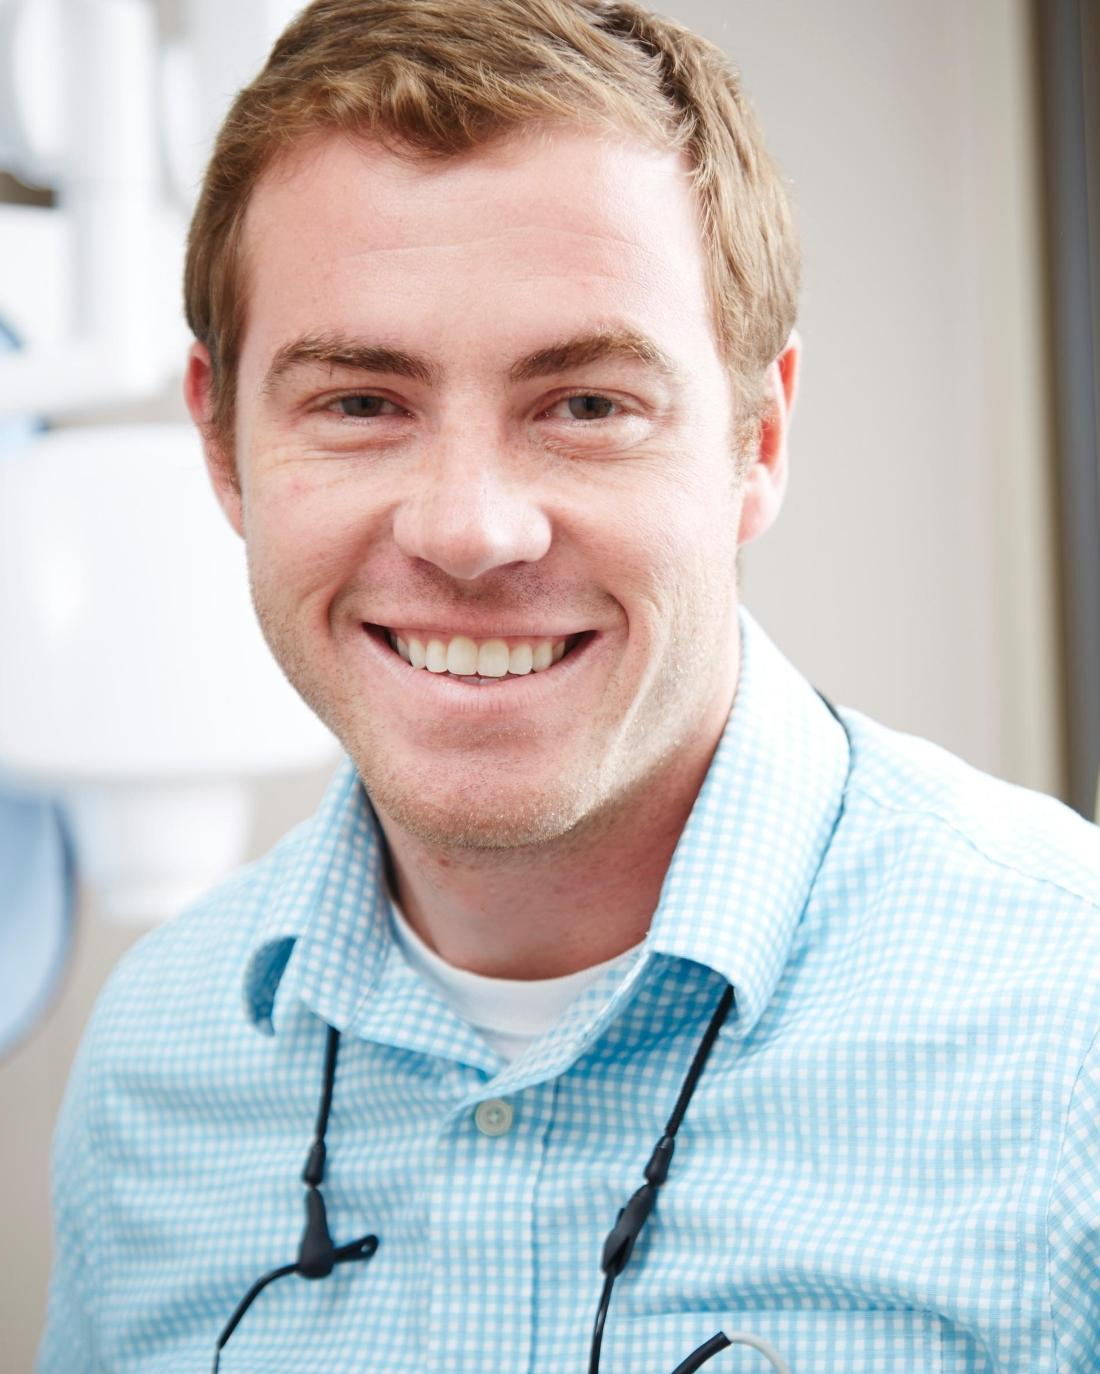 Dr. Shane Ruggless DMD our dentist in Springfield, IL